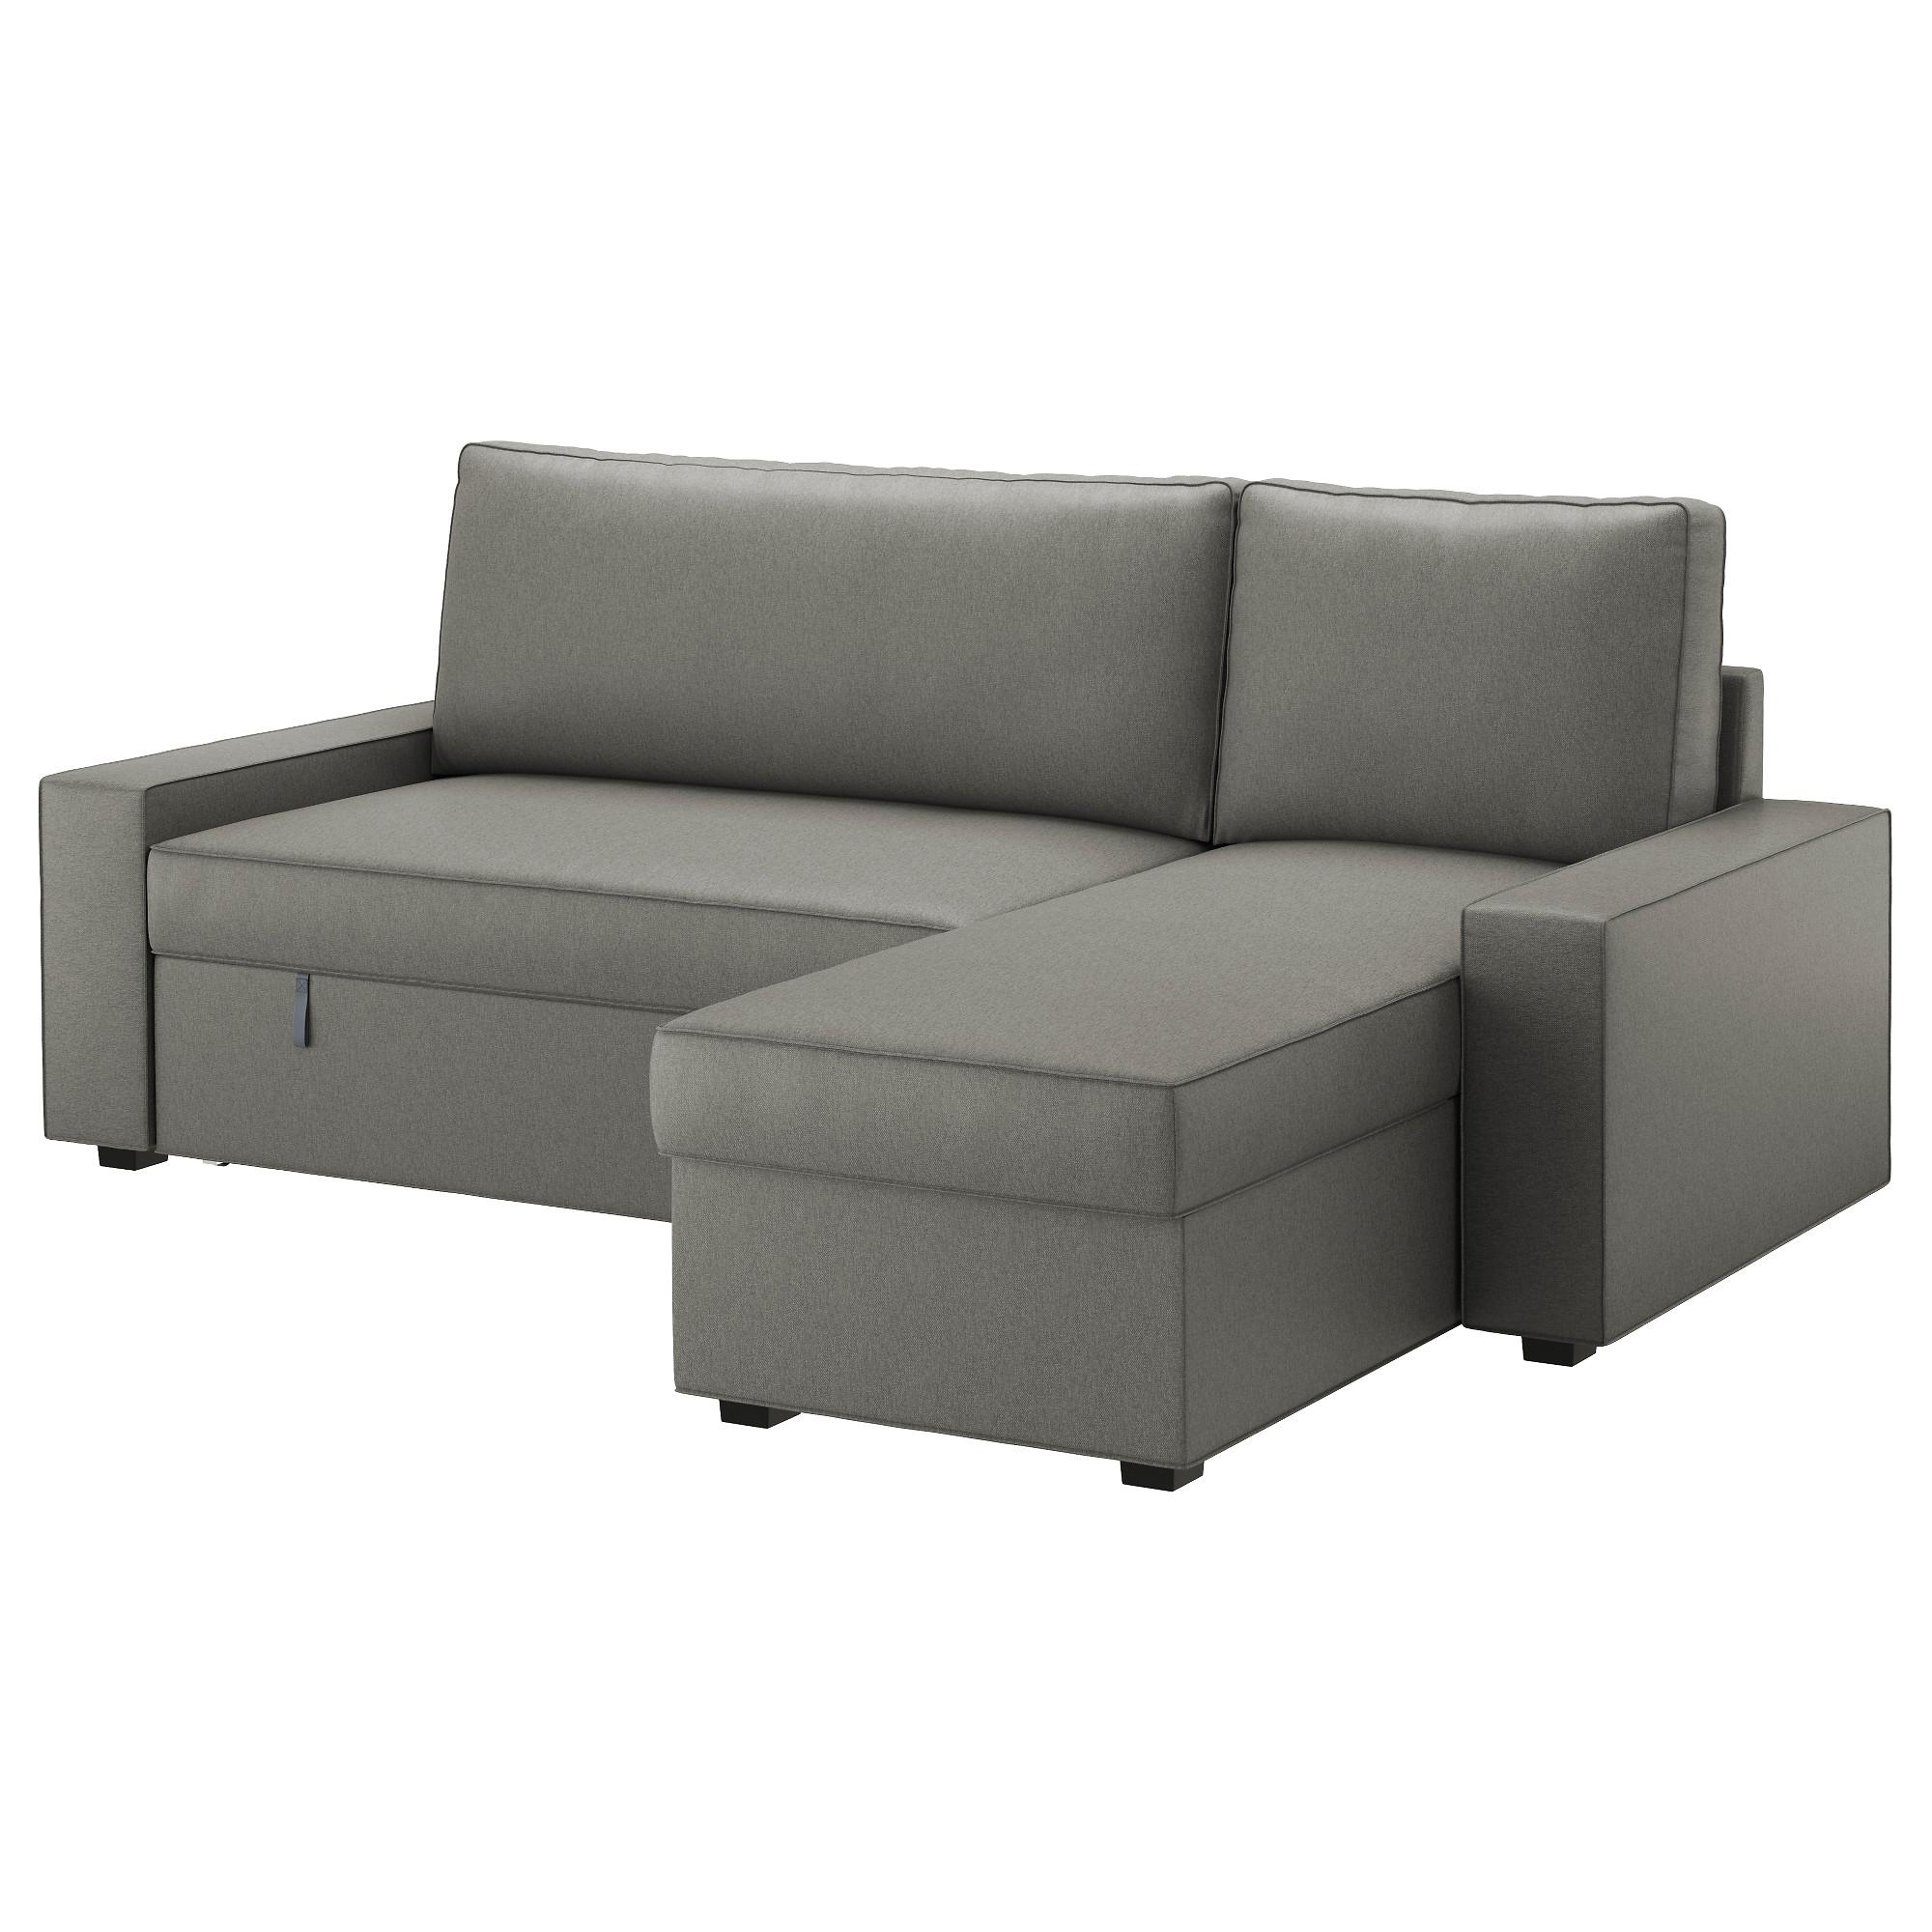 20 best ideas chaise longue sofa beds sofa ideas - Chaise longue sofa bed ...